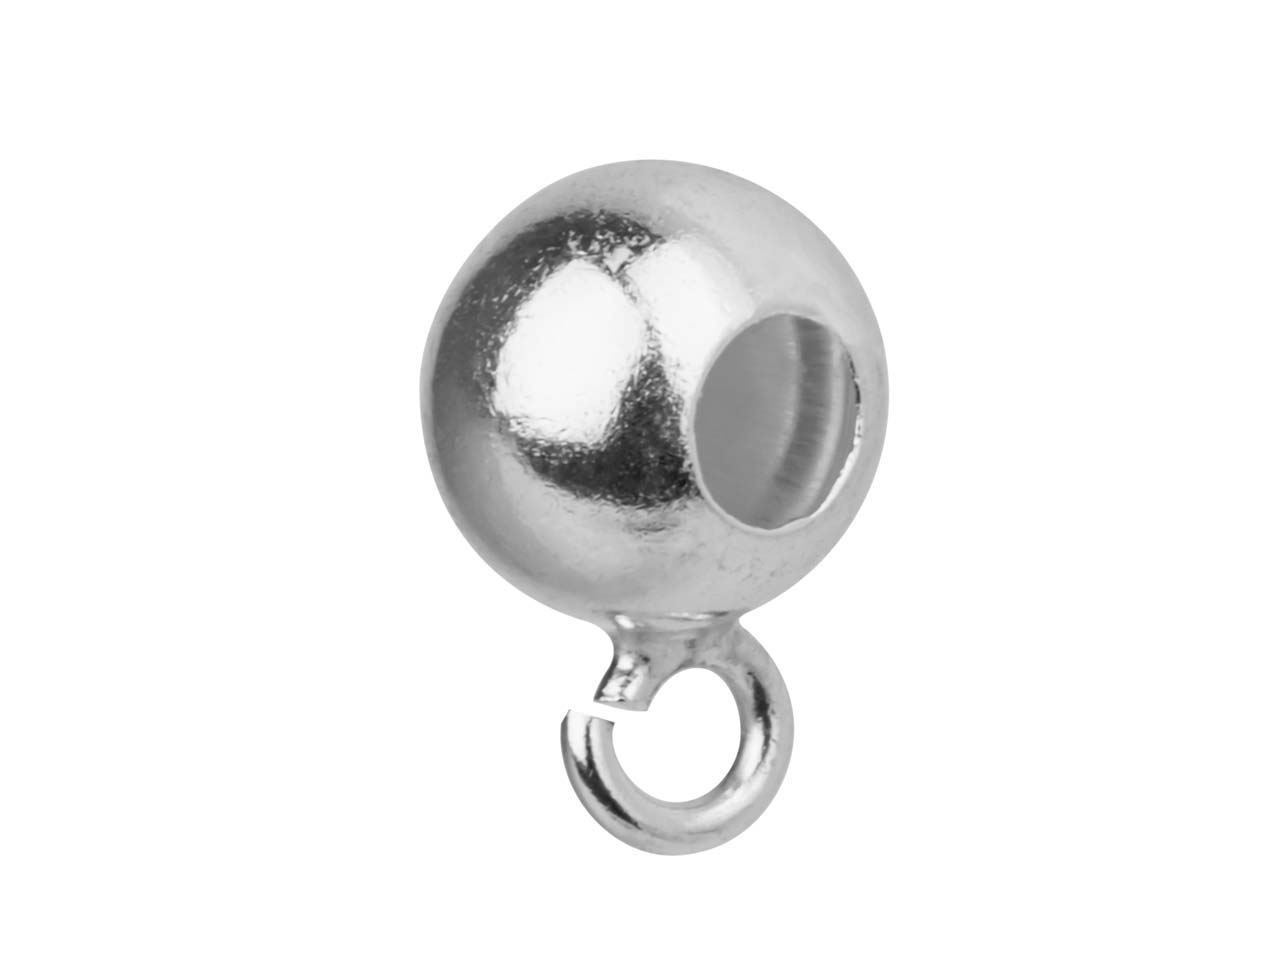 Sterling Silver Bead Bail 5mm,     Pack of 10 Drilled Bead Slips Onto Chain With Jump Ring To Attach     Charm